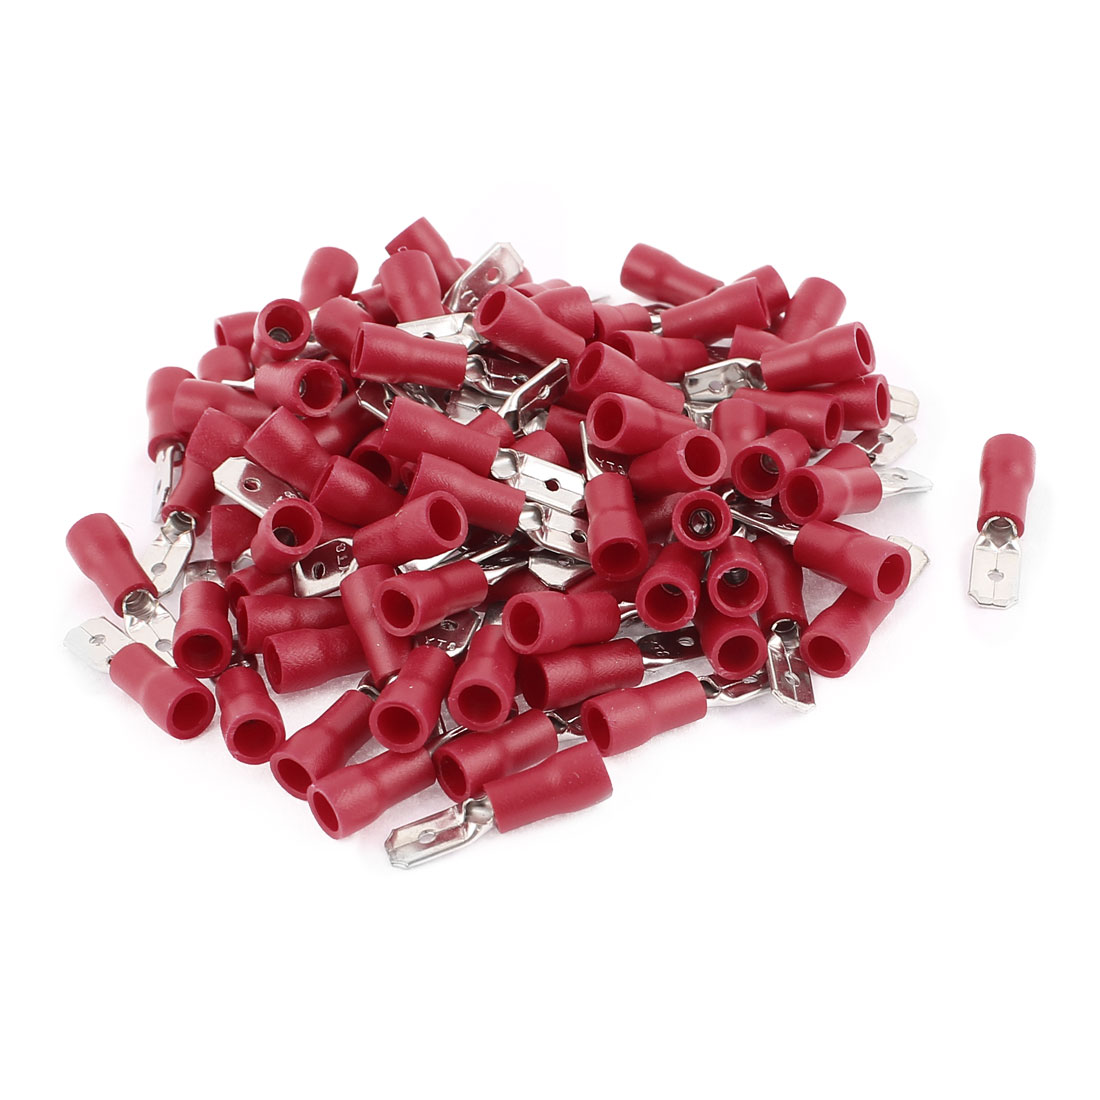 100Pcs MDD1.25-187(8) PVC Sleeve Insulating Crimp Terminals for 22-16 AWG